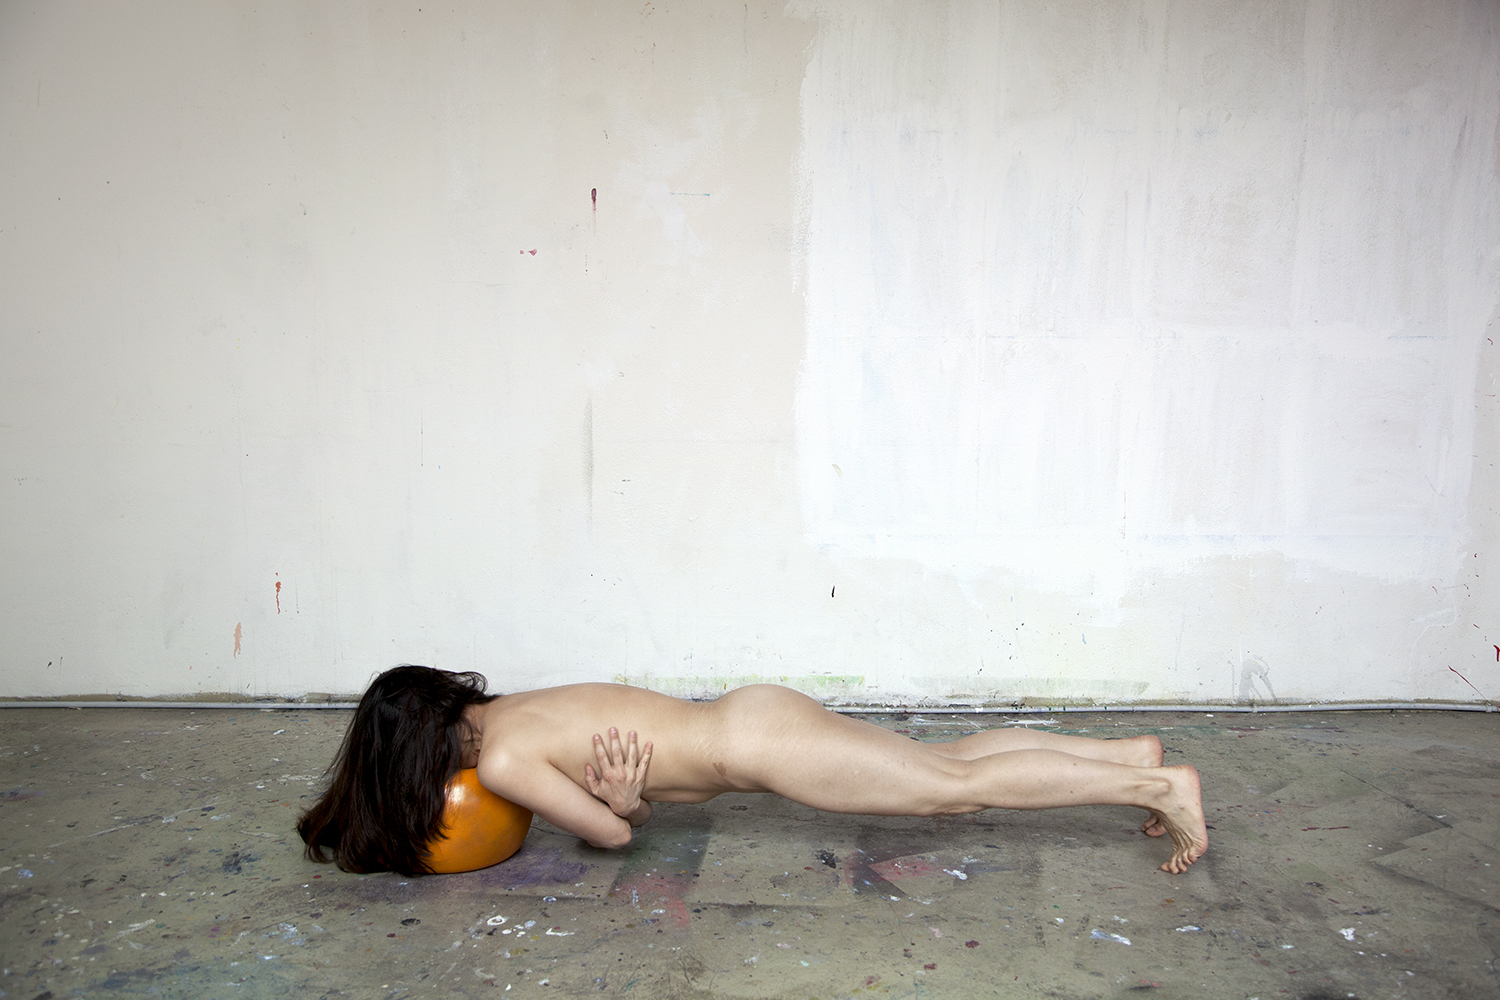 Photograph of a naked person face down on the floor in a plank position with their dark hair covering the orange object upon which their face is resting.